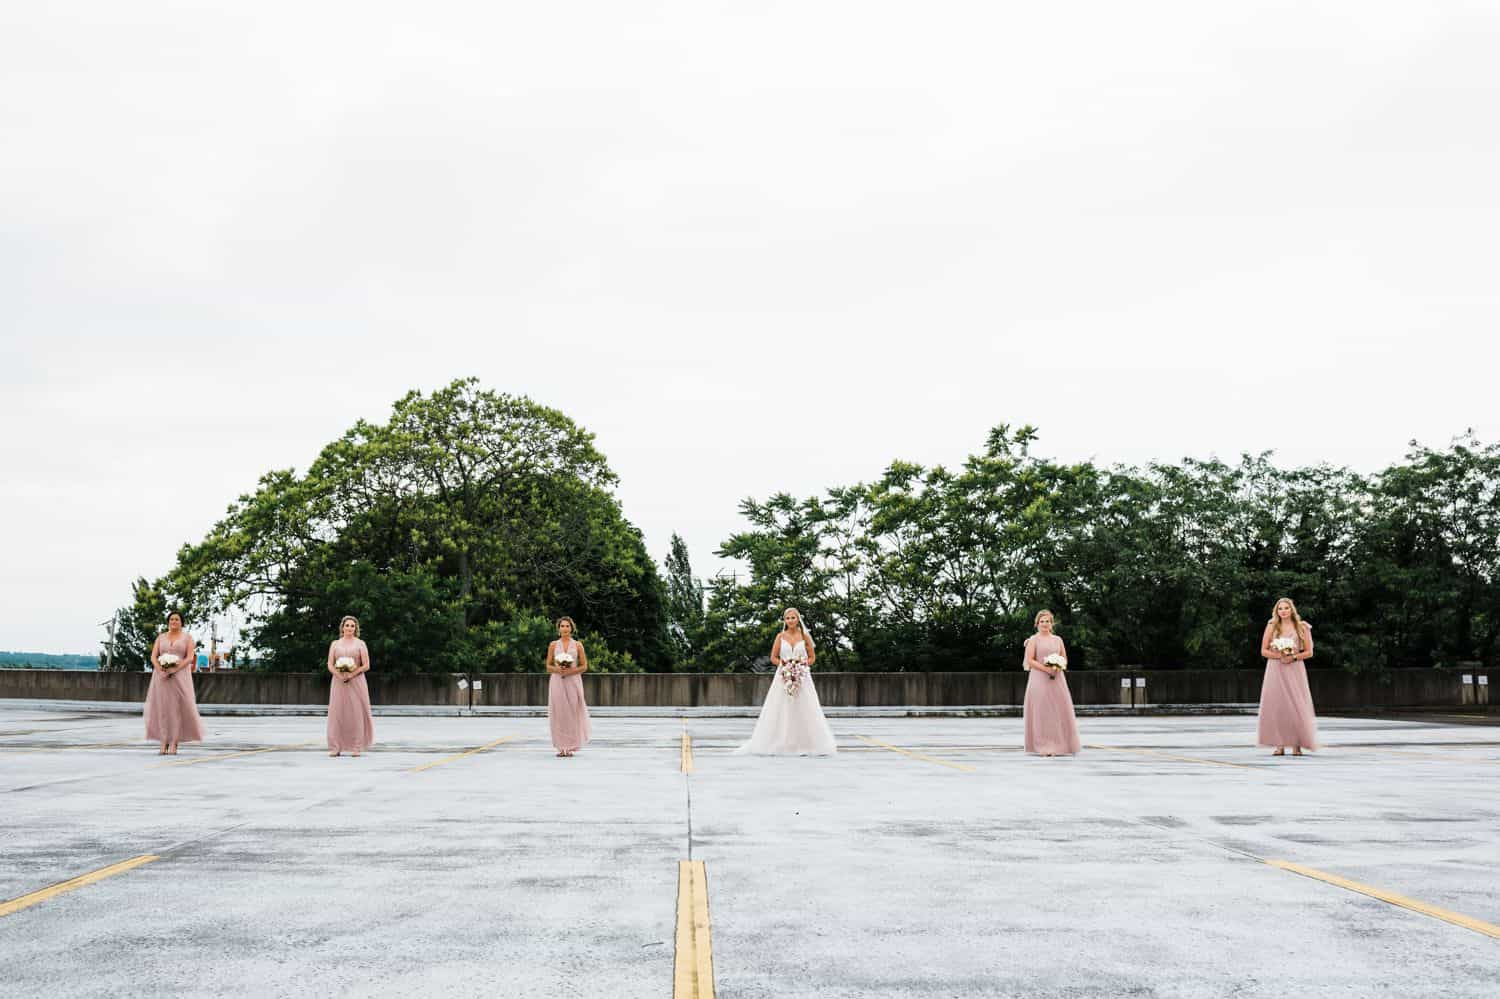 A bride and her bridesmaids stand in a widely-spaced line in a tree-lined parking lot.